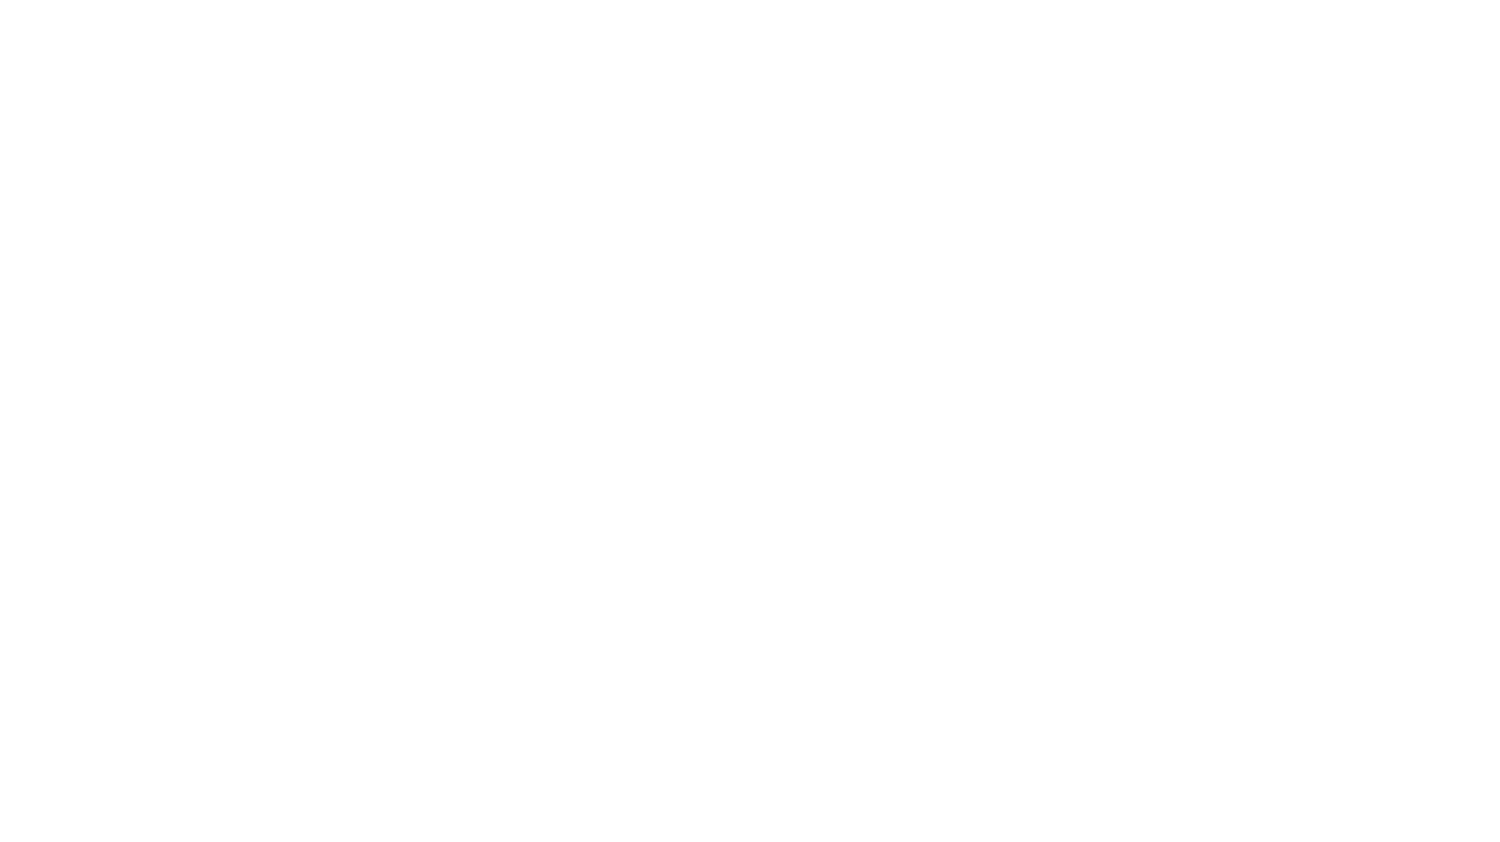 Rocky Mountain Racks